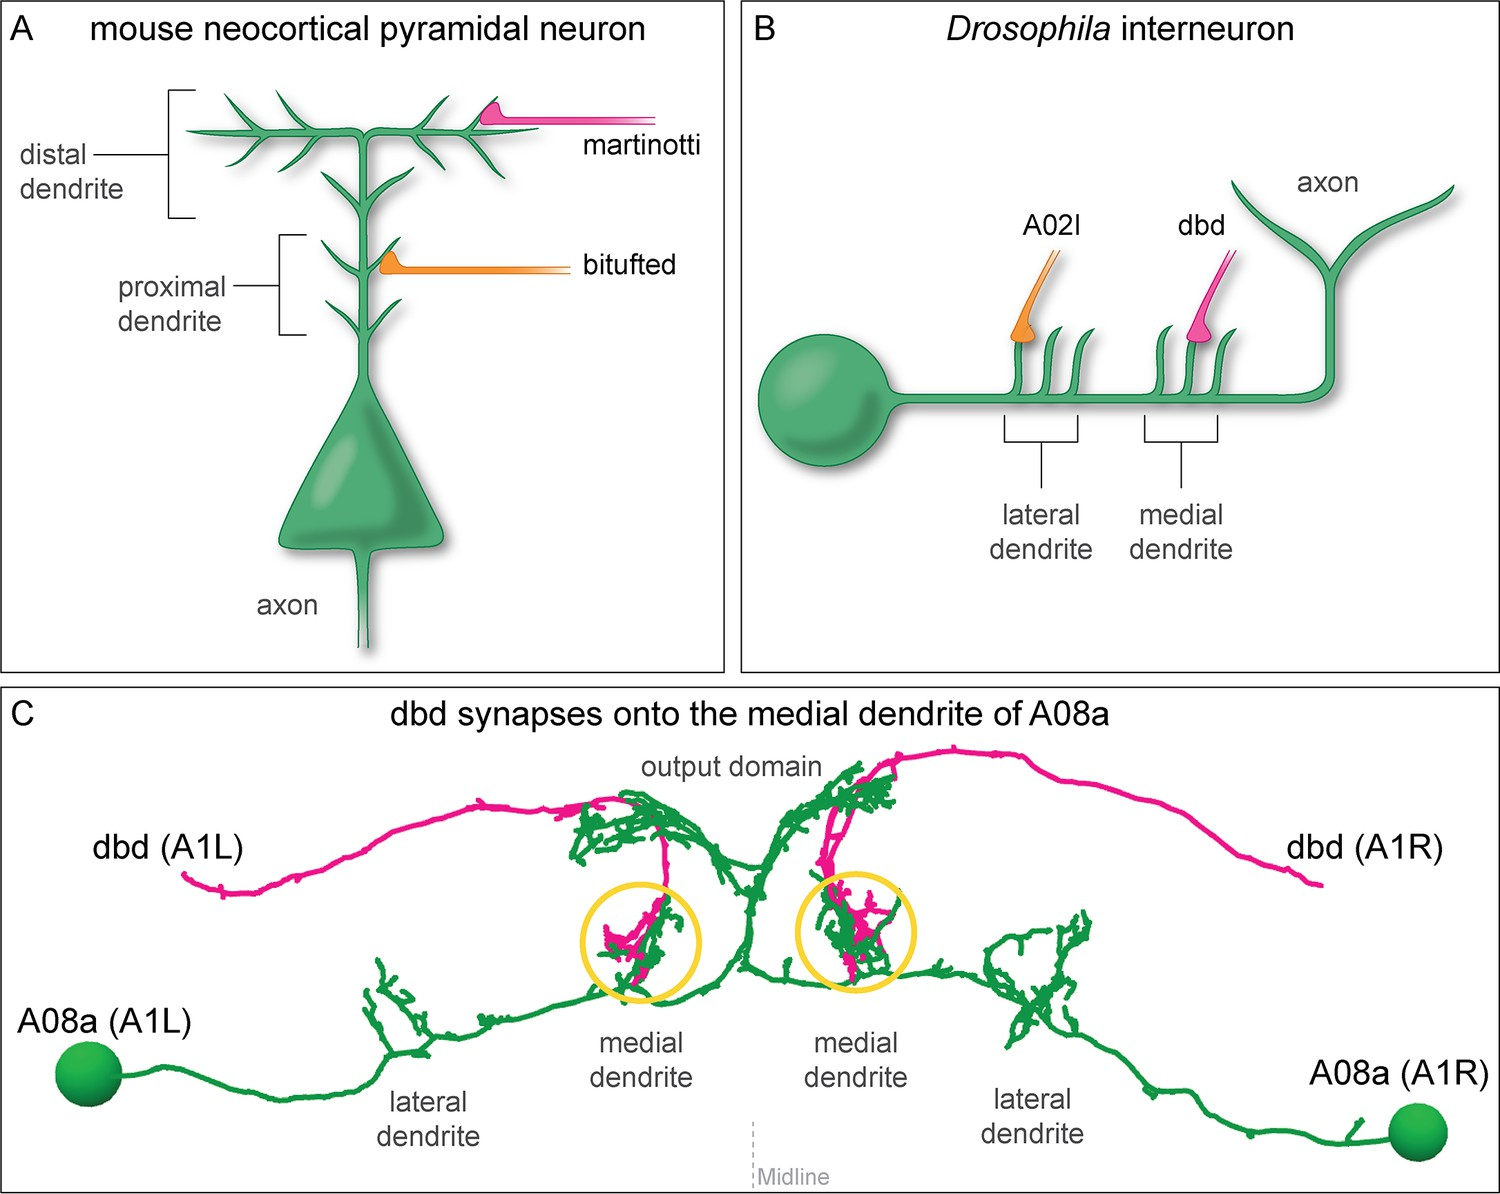 Regulation of subcellular dendritic synapse specificity by